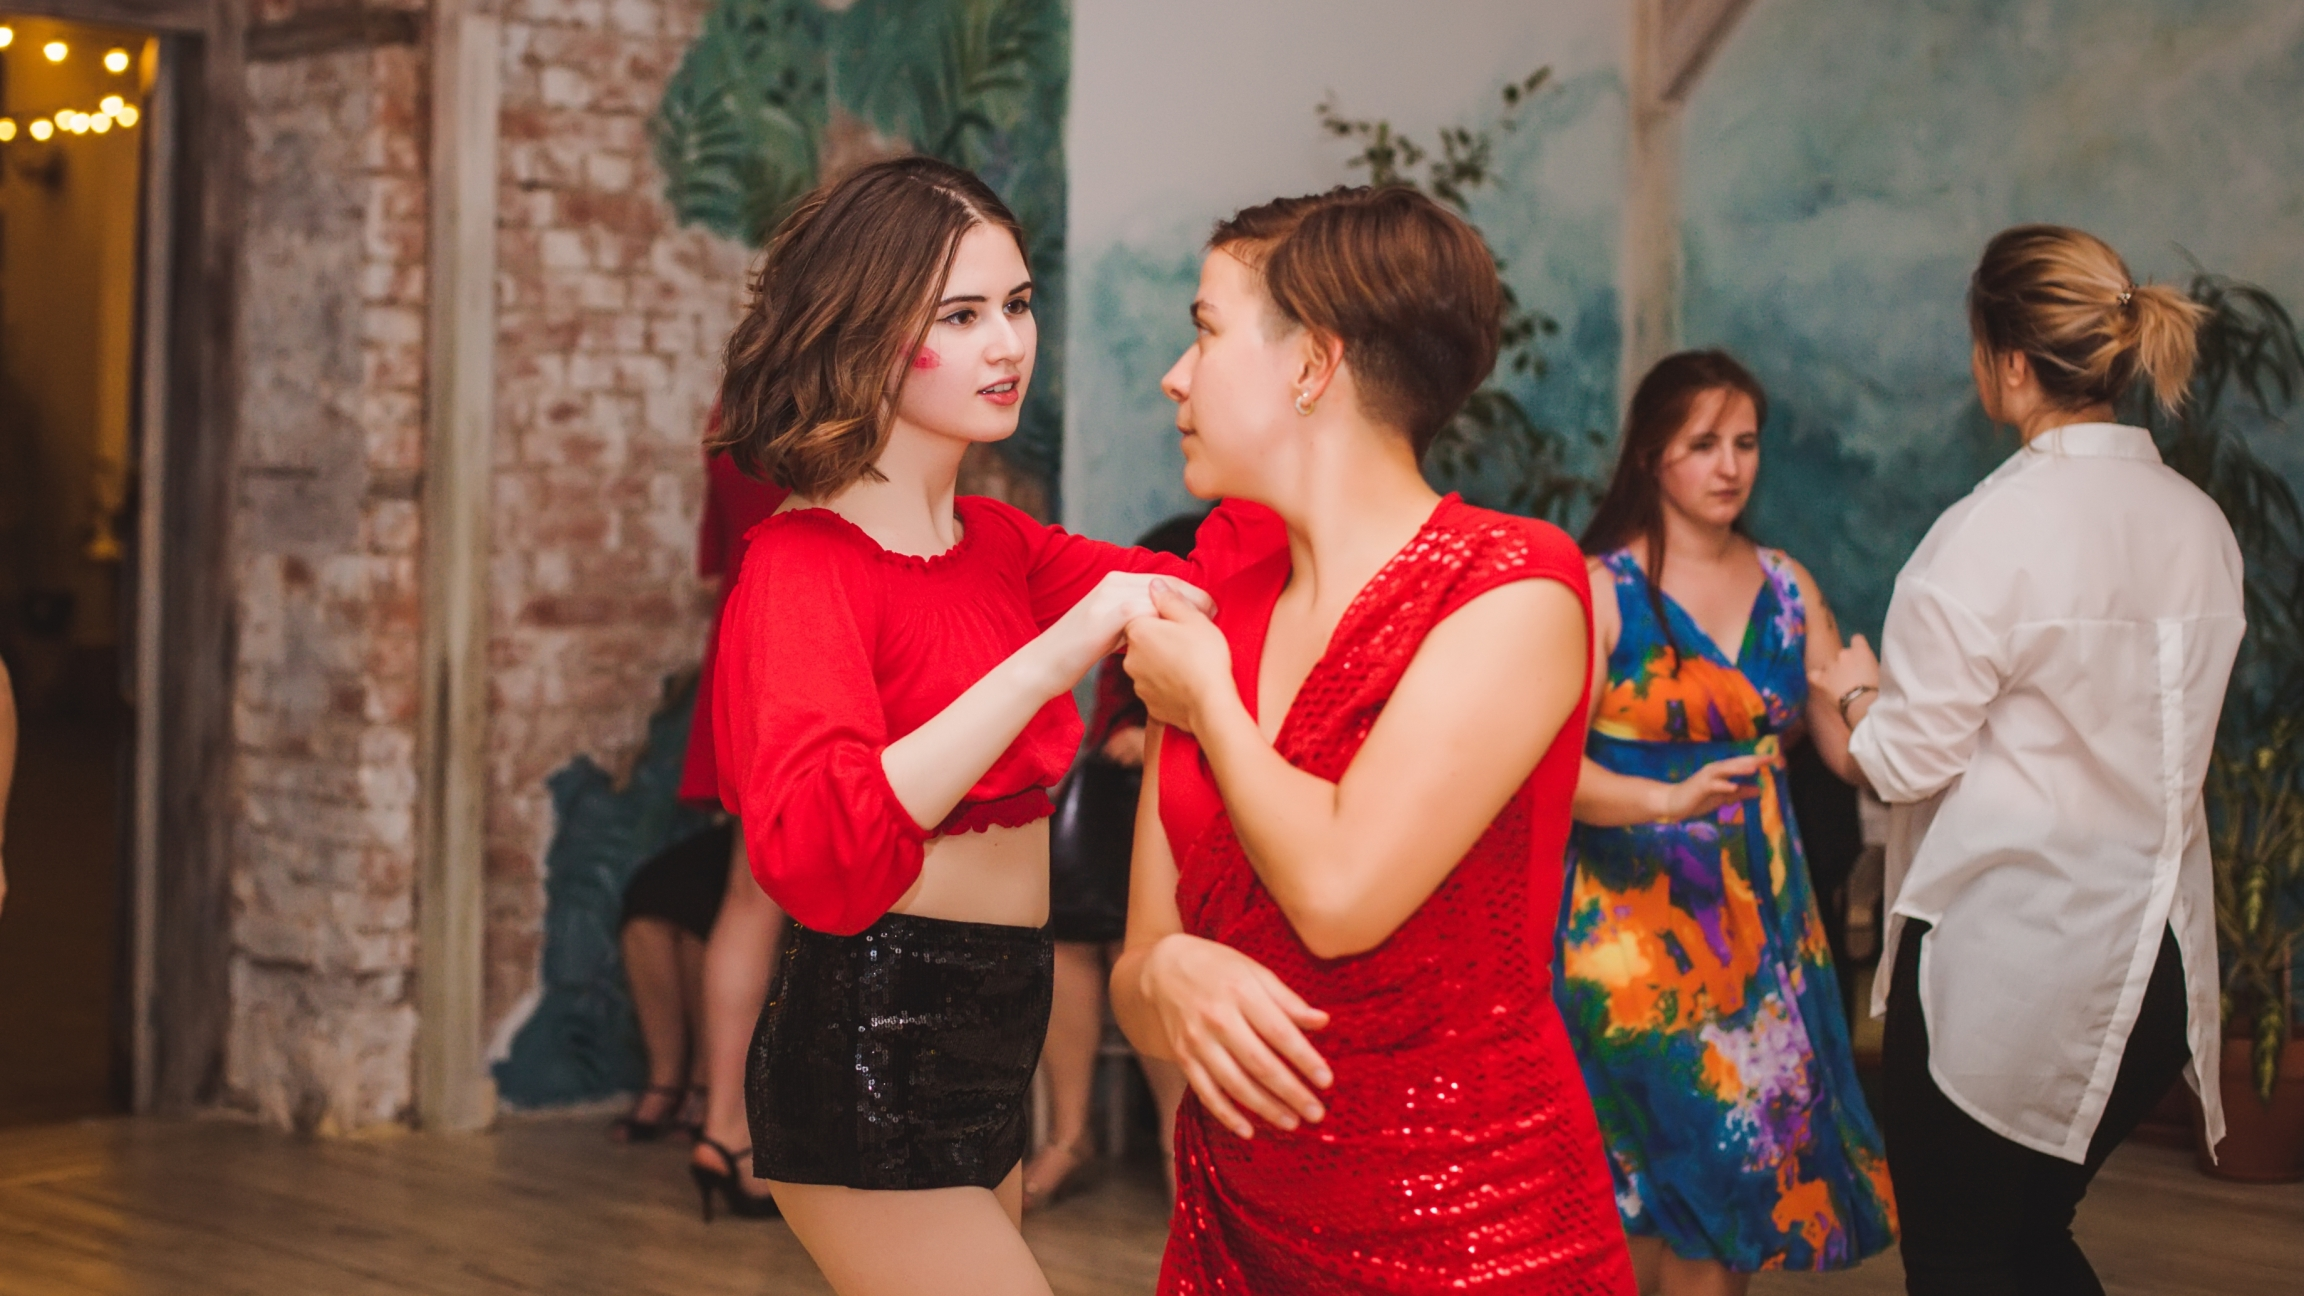 Two women dance together wearing red clothing.